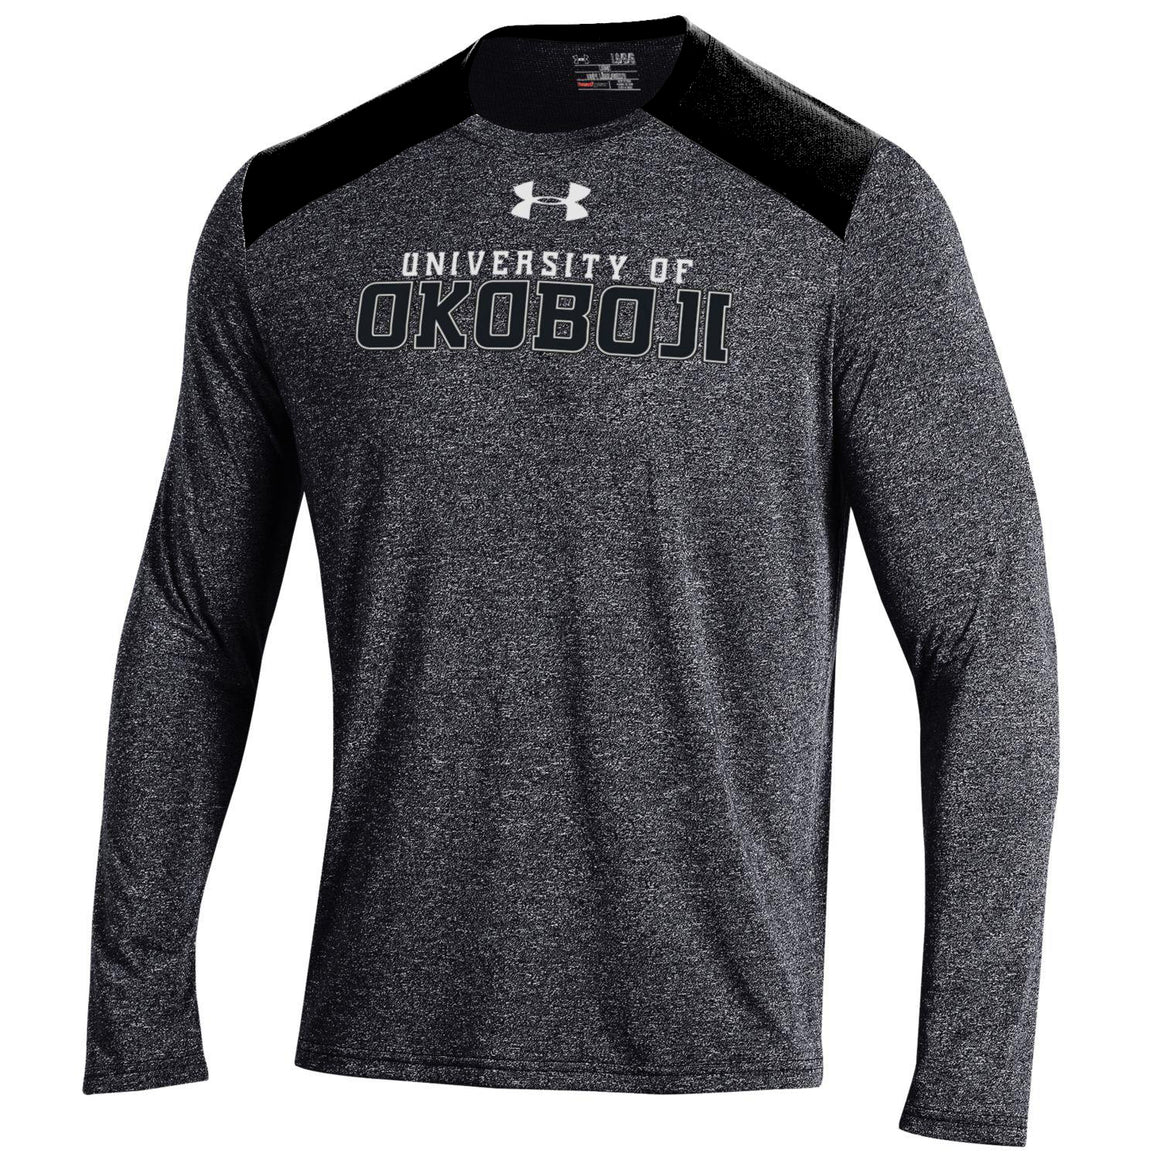 Under Armour Threadborne Black and Gray Longsleeve